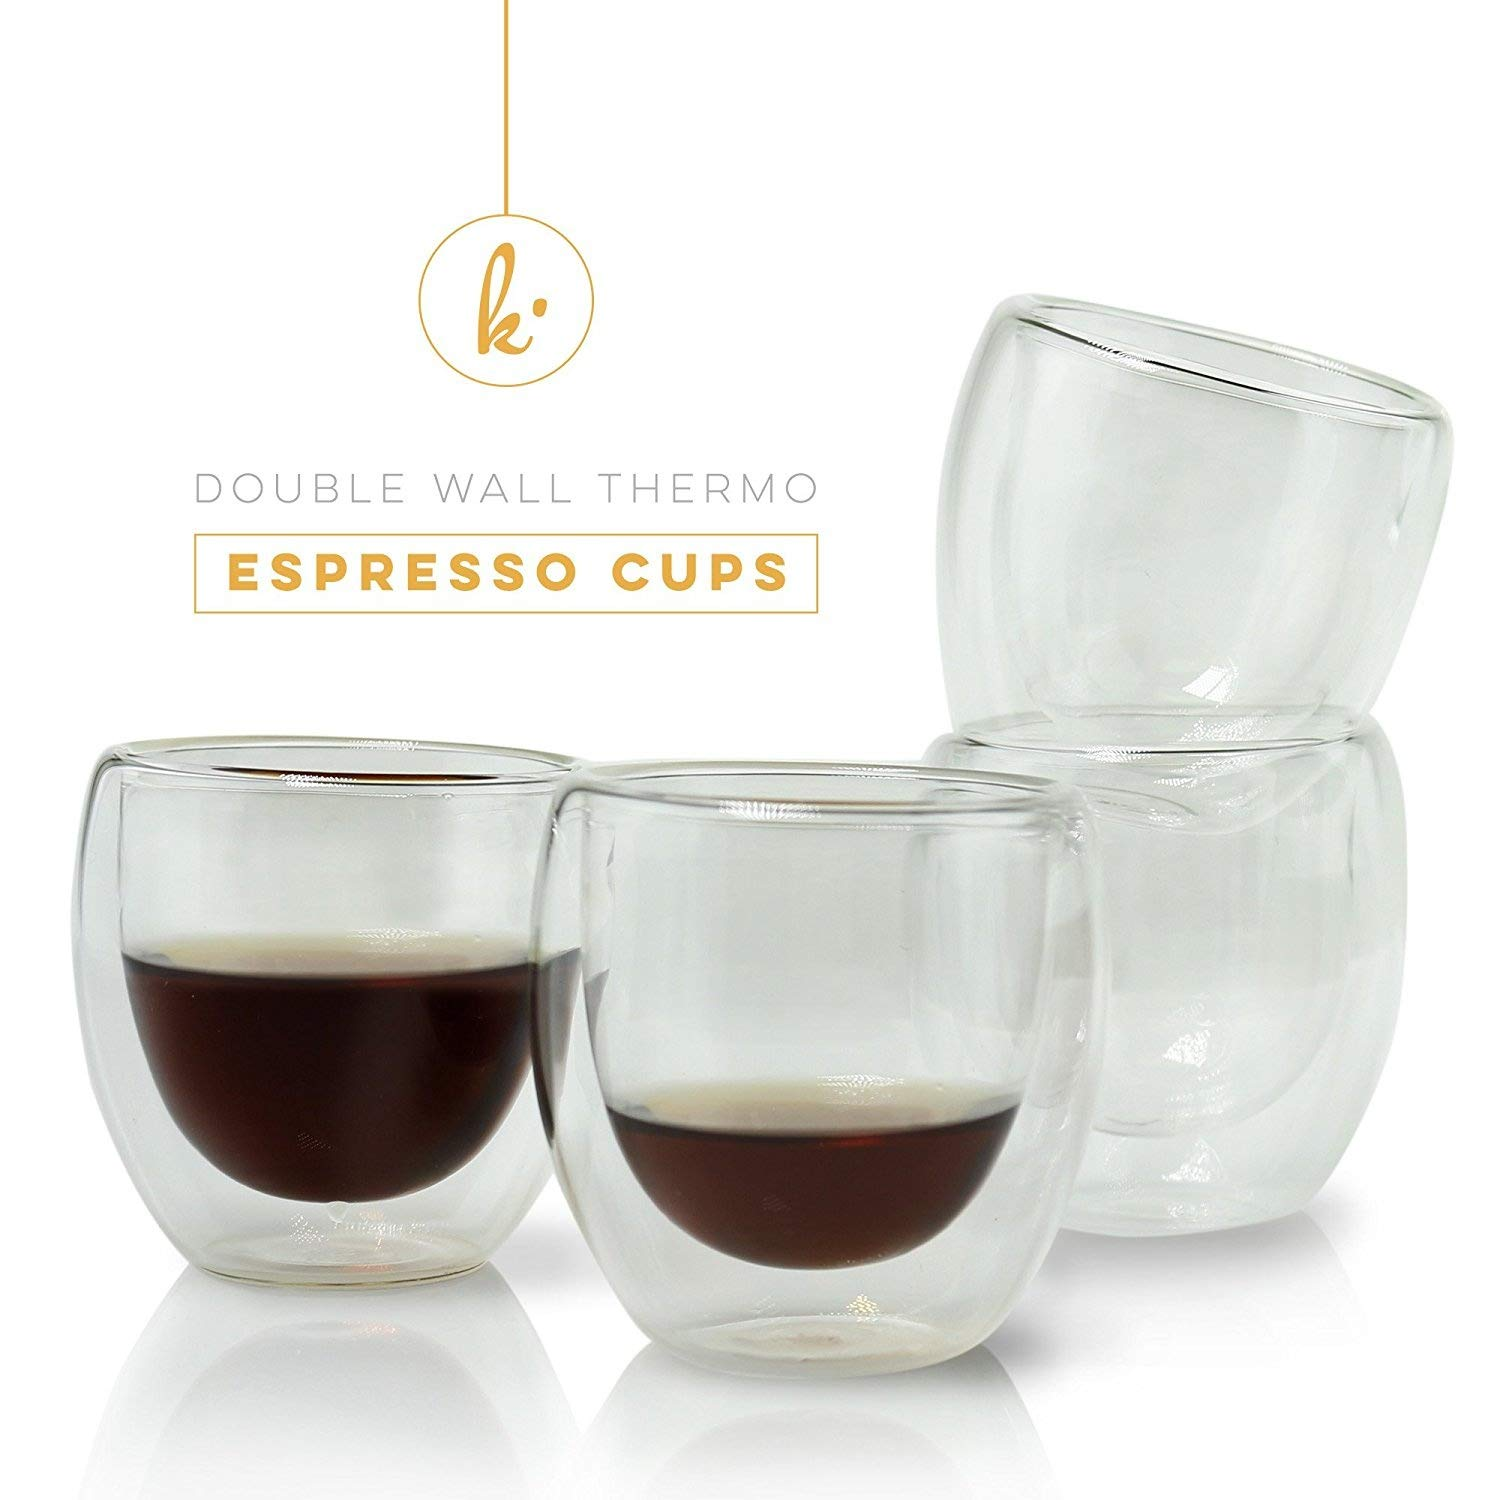 Espresso Cups Shot Glass Coffee Set of 2 - Double Wall Thermo Insulated Kitchables SYNCHKG129552